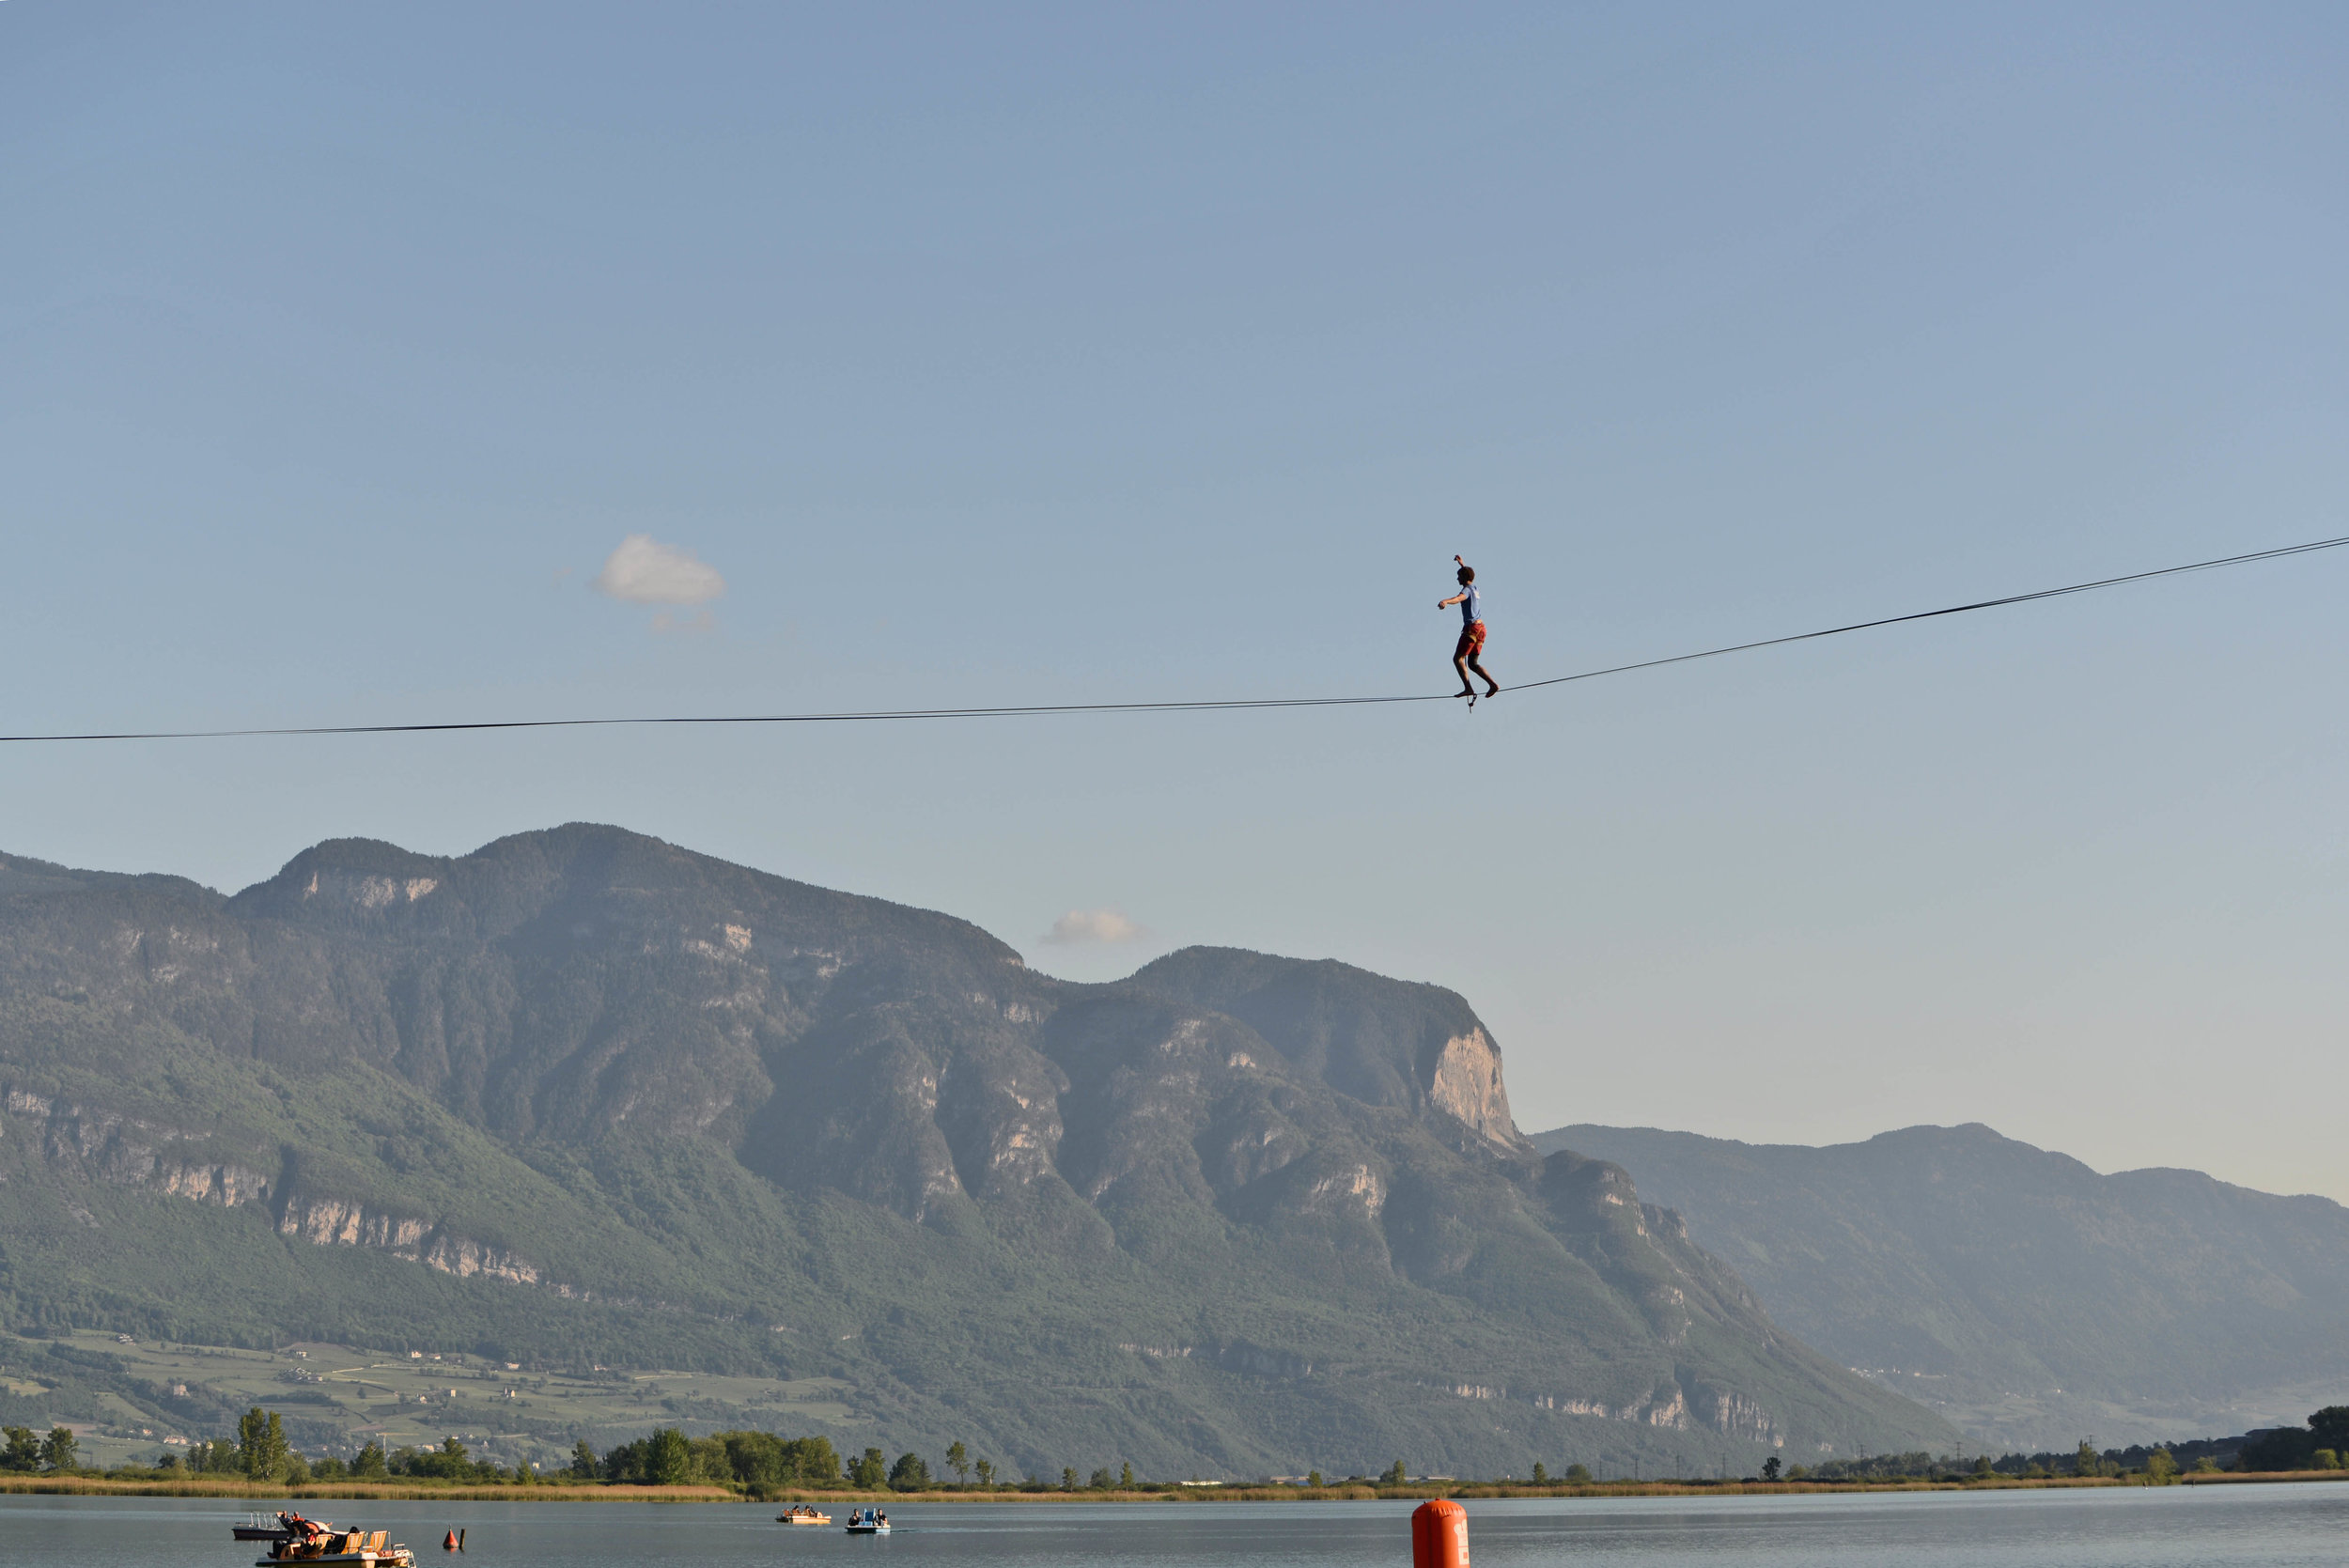 world record waterline Italy Kalterersee Slackline Lyell Grunberg show performance spectacle funambule circus Highline trickline (3).JPG